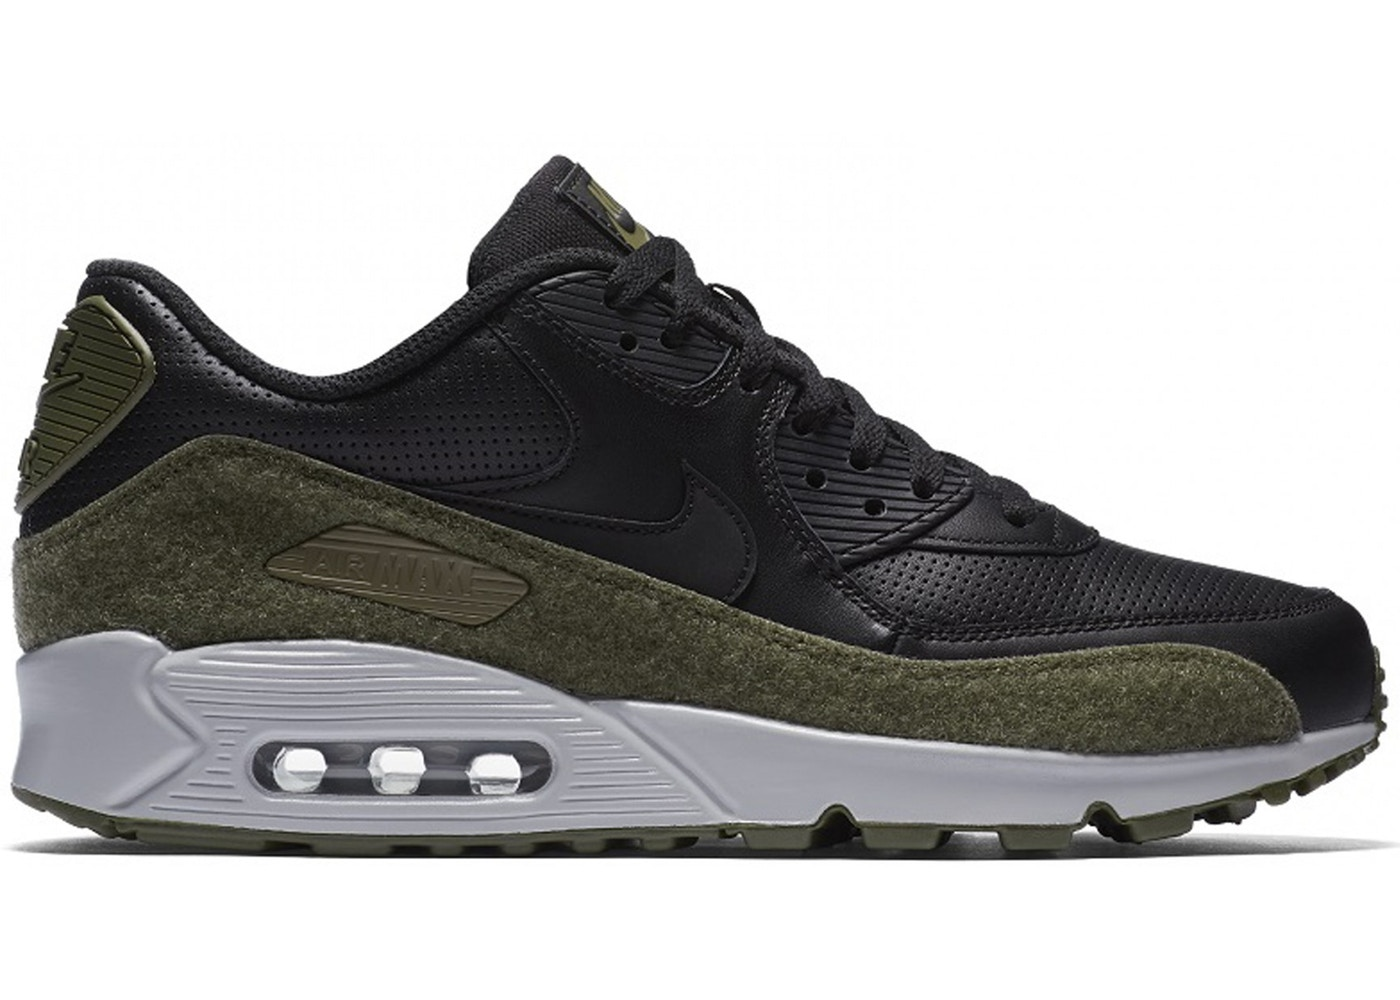 finest selection 0cb91 9ce28 Sell. or Ask. Size: 10.5. View All Bids. Air Max 90 HAL Black Olive